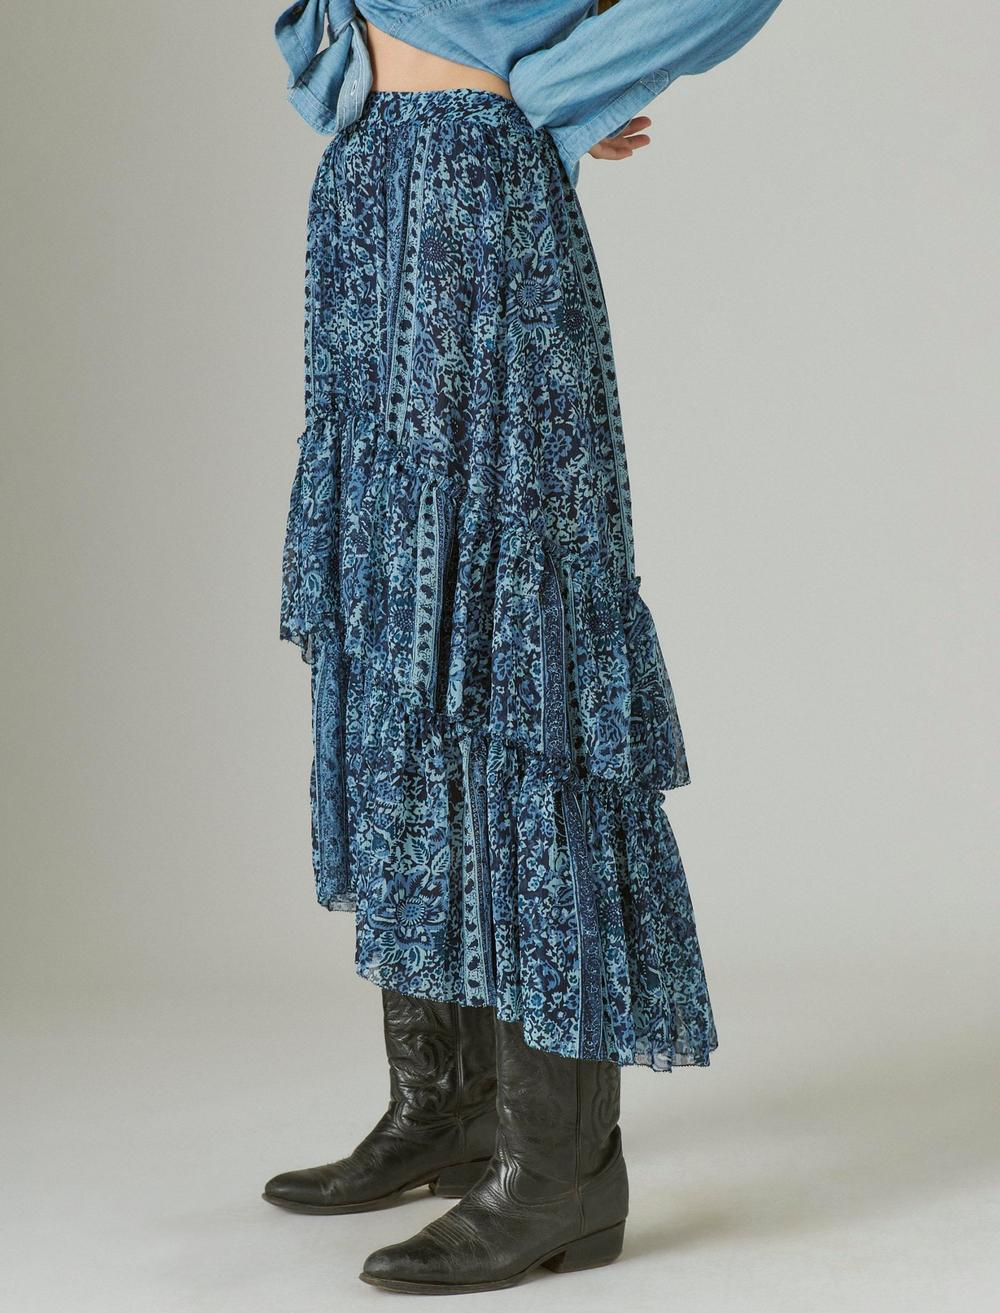 FLORAL PRINT TIERED MAXI SKIRT, image 5